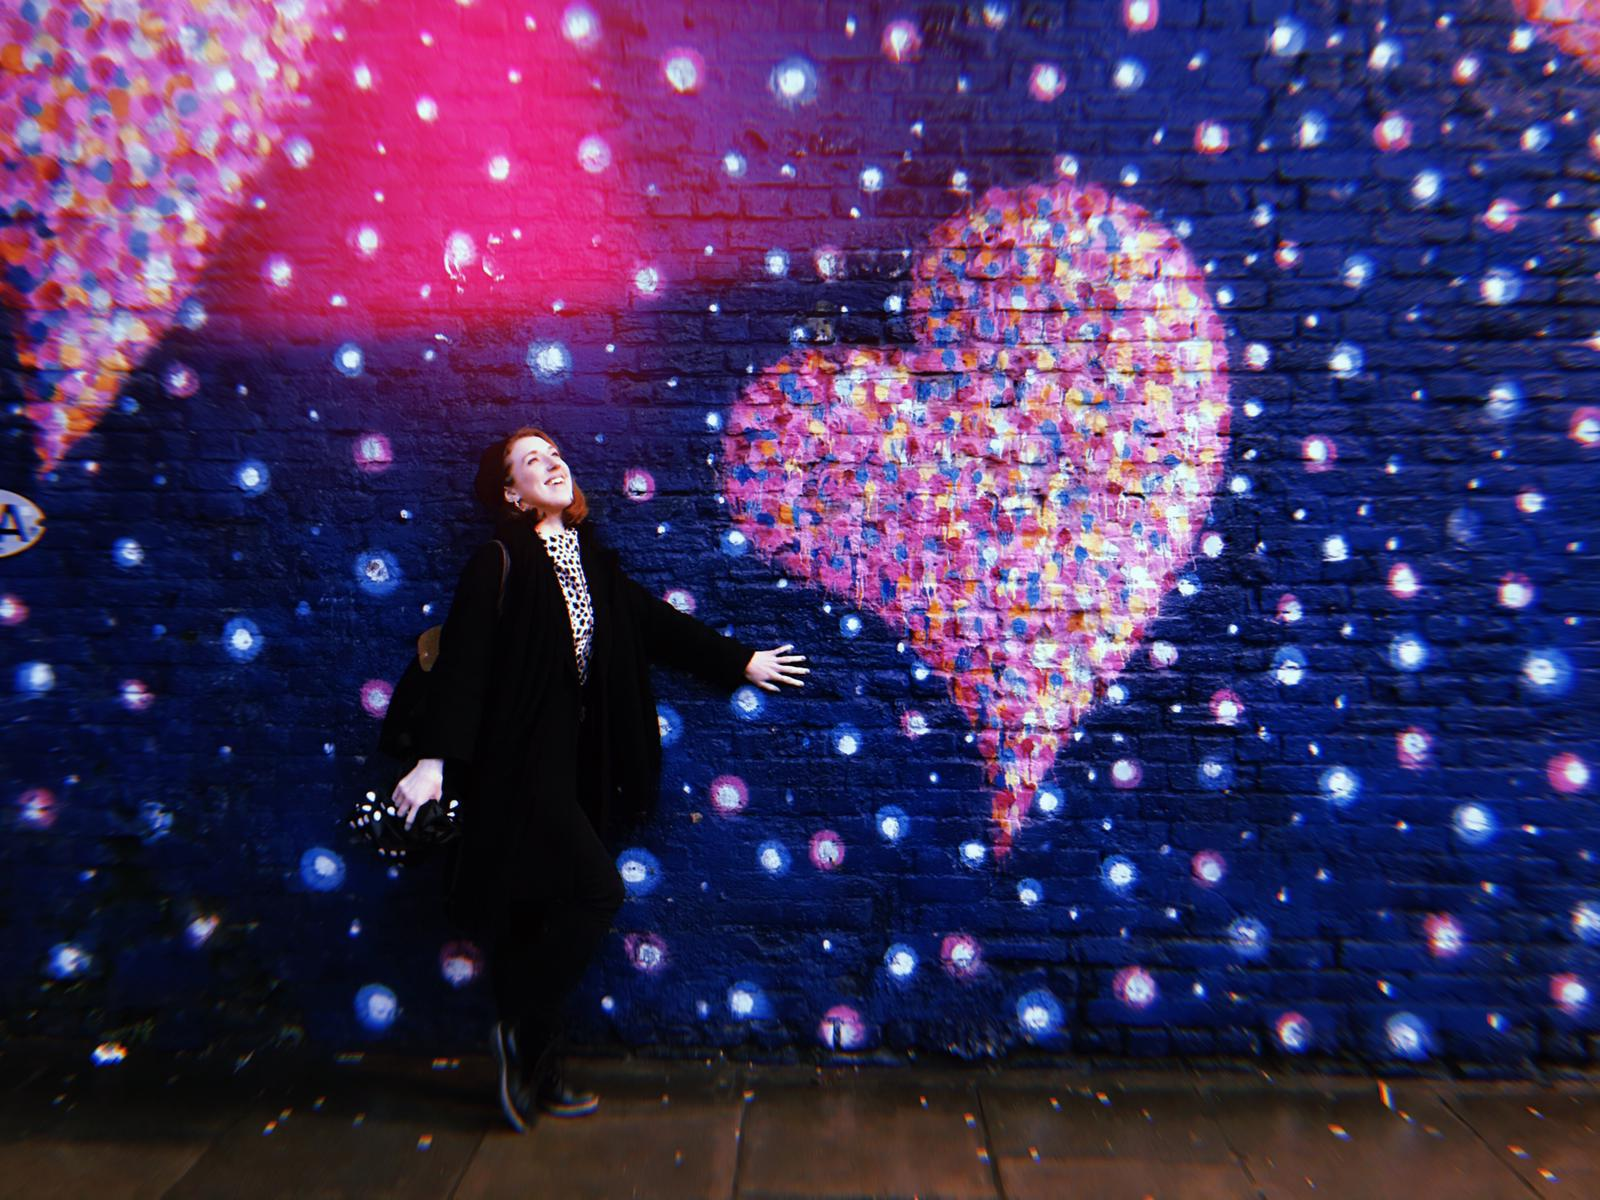 A Photo of Lydia standing next to a wall painting of a love heart